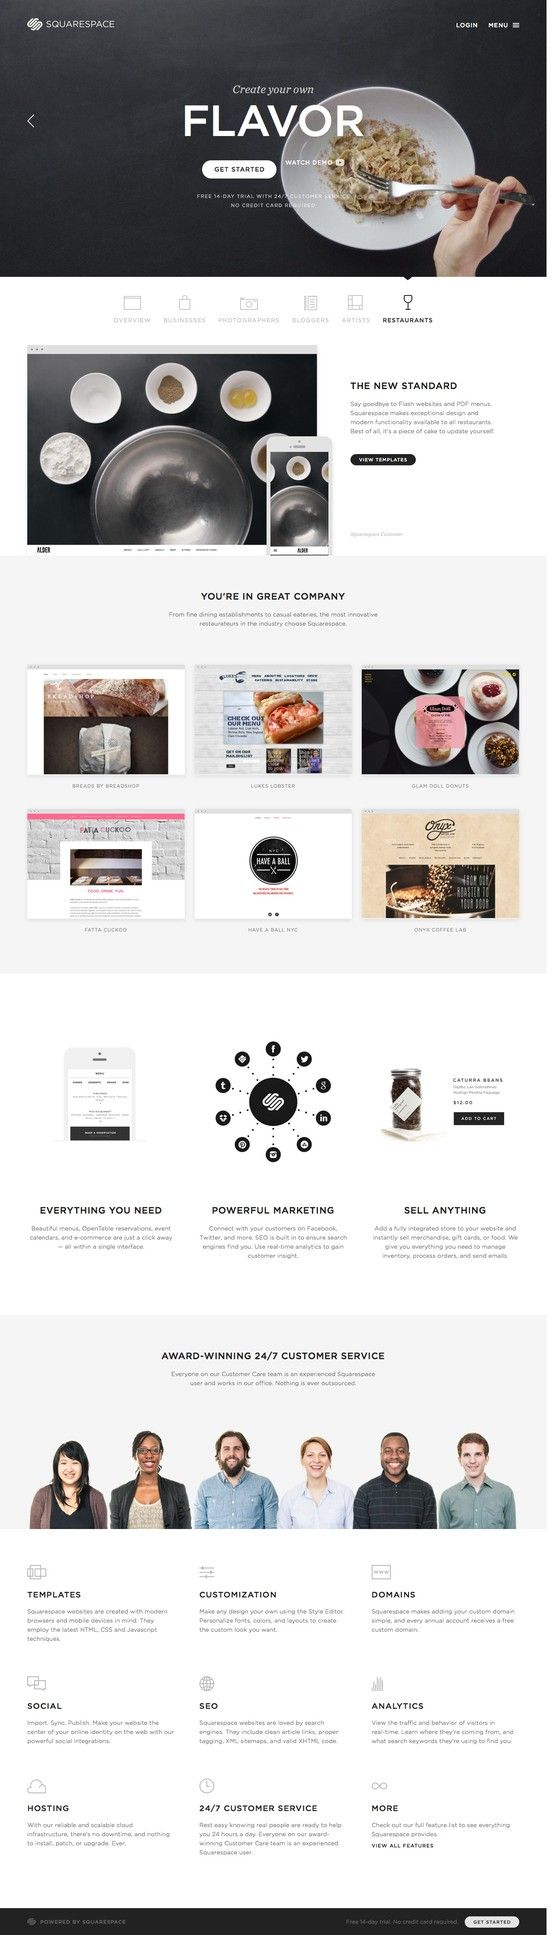 Squarespace | #webdesign #it #web #design #layout #userinterface #website #webdesign < repinned by www.BlickeDeeler.de | Take a look at www.WebsiteDesign-Hamburg.de